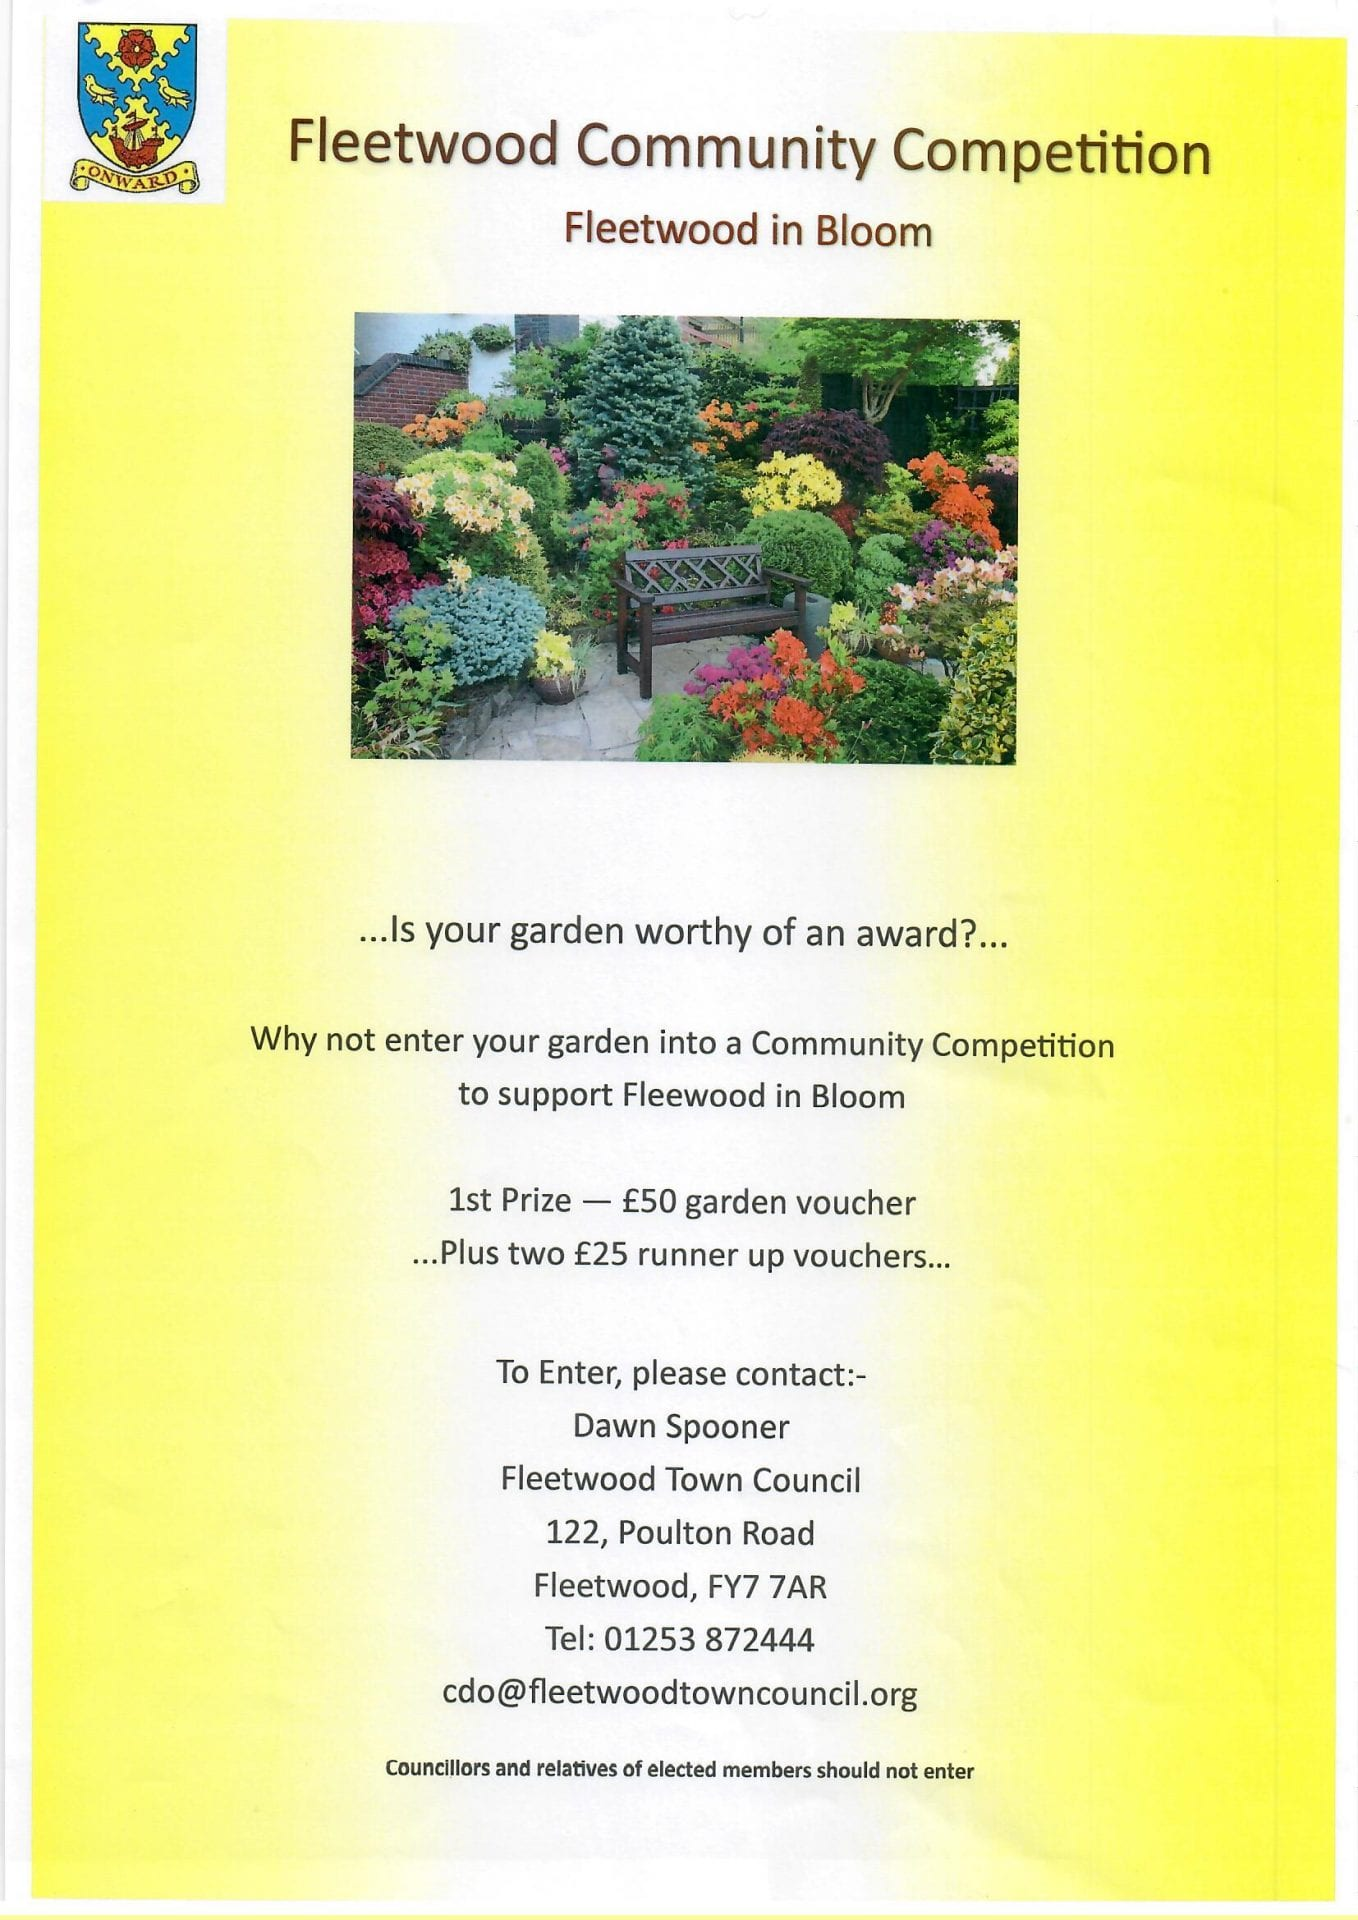 2019 Community Competition with Fleetwood In Bloom